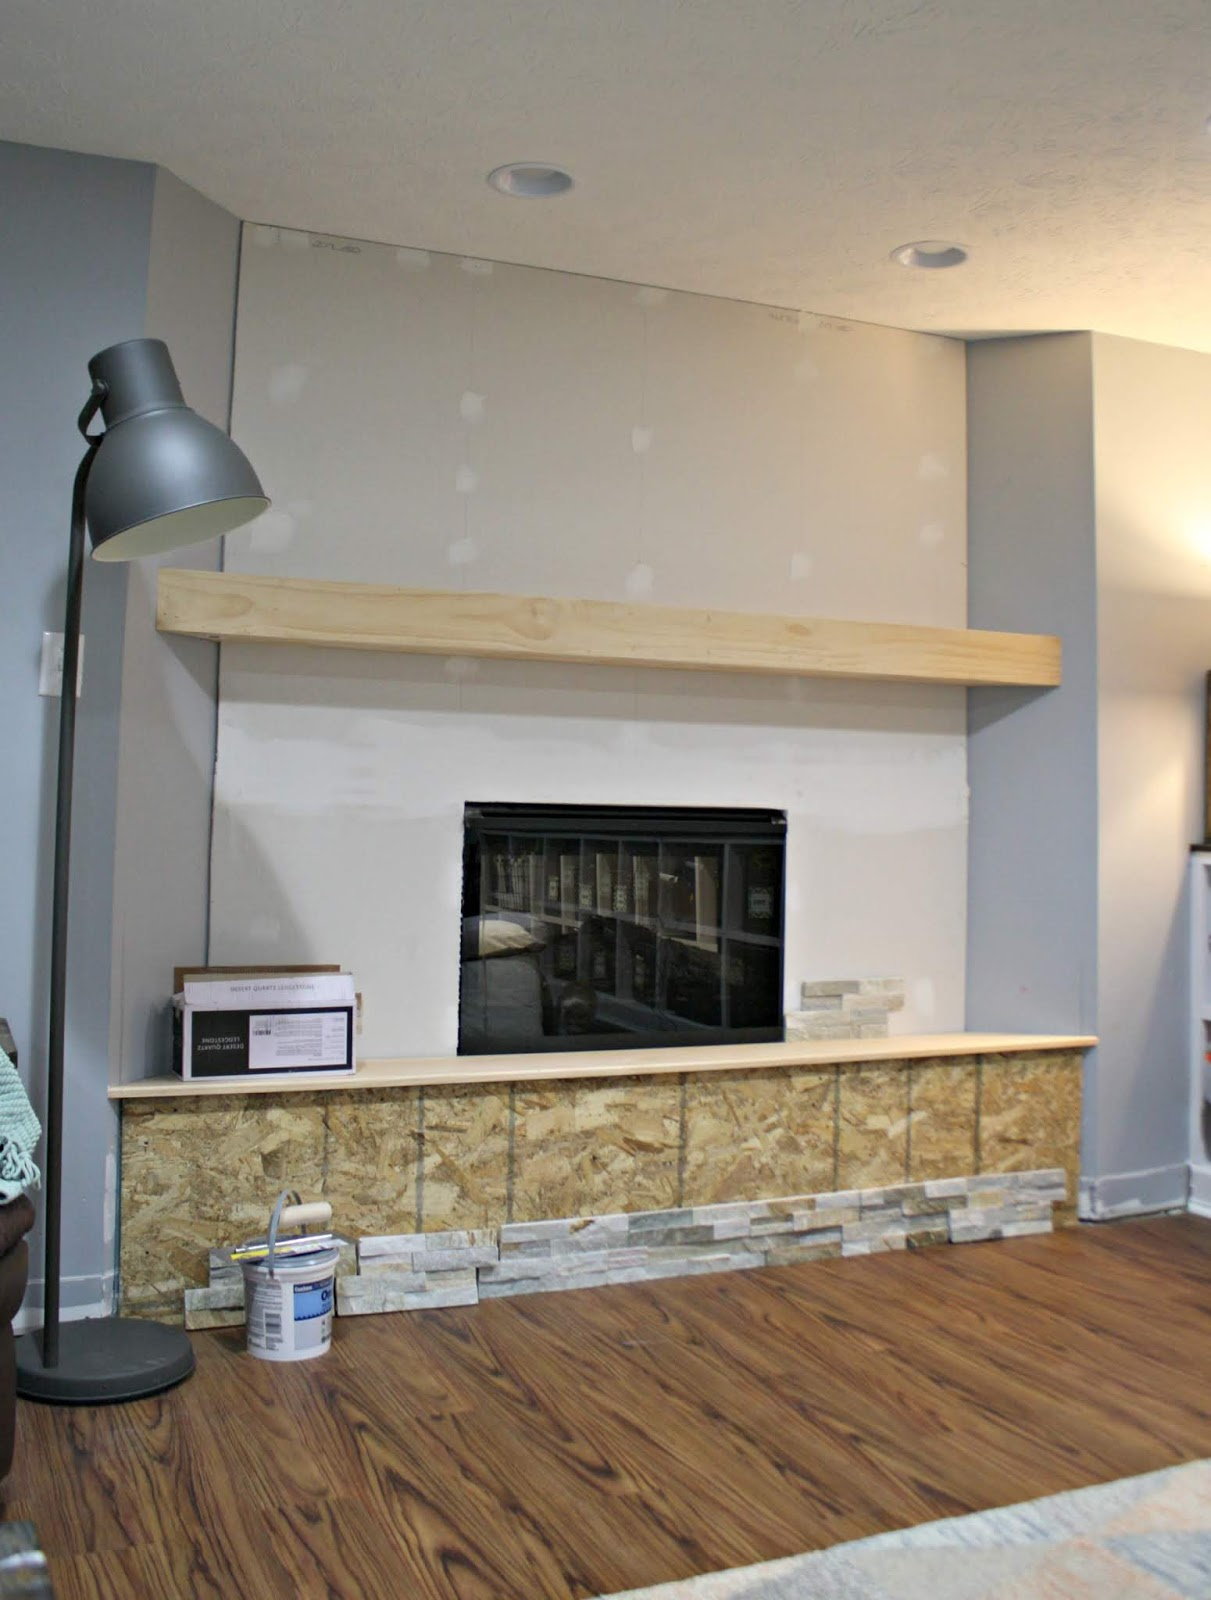 Adding an electric fireplace with mantel